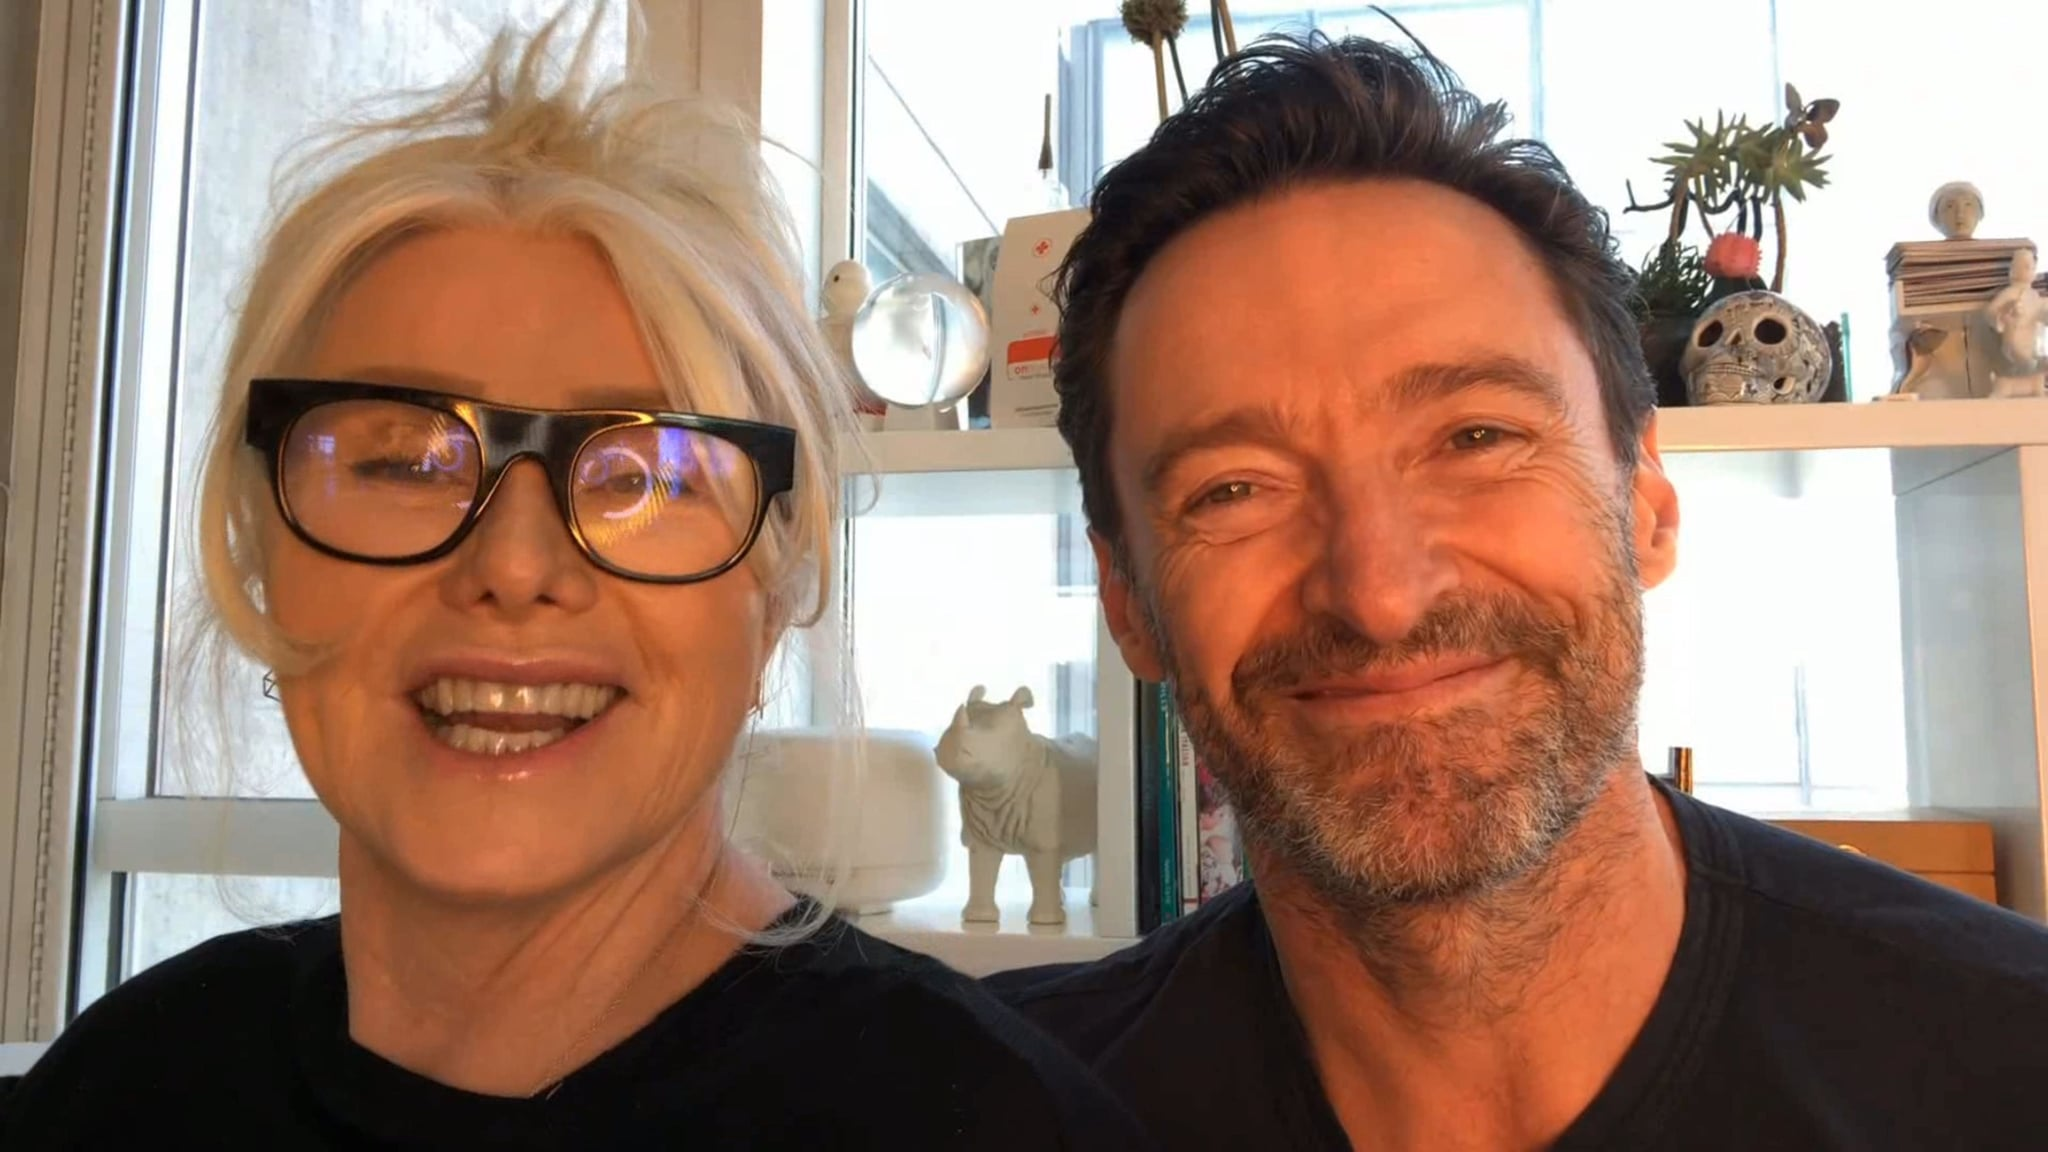 UNSPECIFIED - FEBRUARY 25: In this screengrab released on February 25, (L-R) Deborra-Lee Furness and Hugh Jackman speak during the G'Day USA American Australian Association Arts Gala on February 25, 2021. (Photo by G'Day USA/G'Day USA via Getty Images)